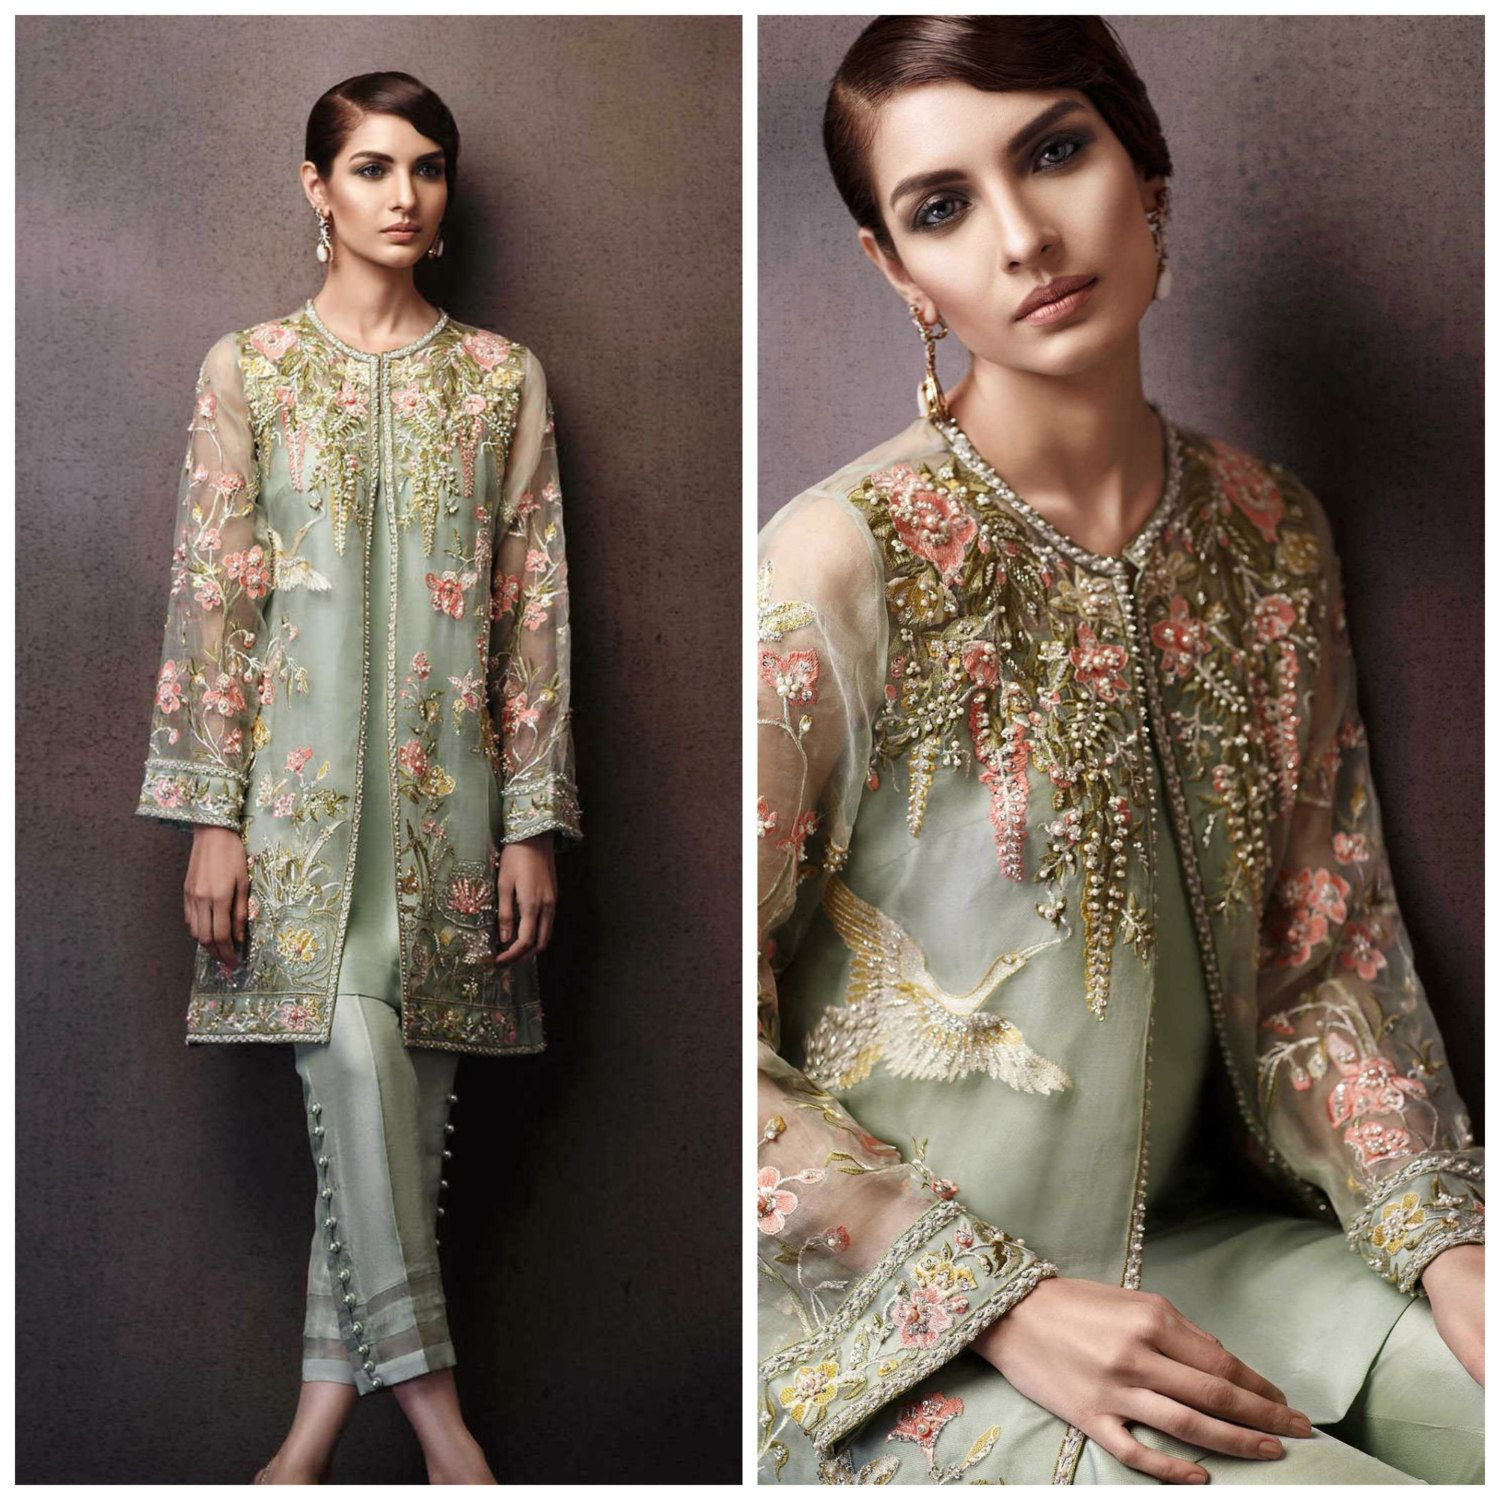 1a621204b9d3 Pakistani Dress- Elan Eden Collection Inspired Embroidered Jacket ...